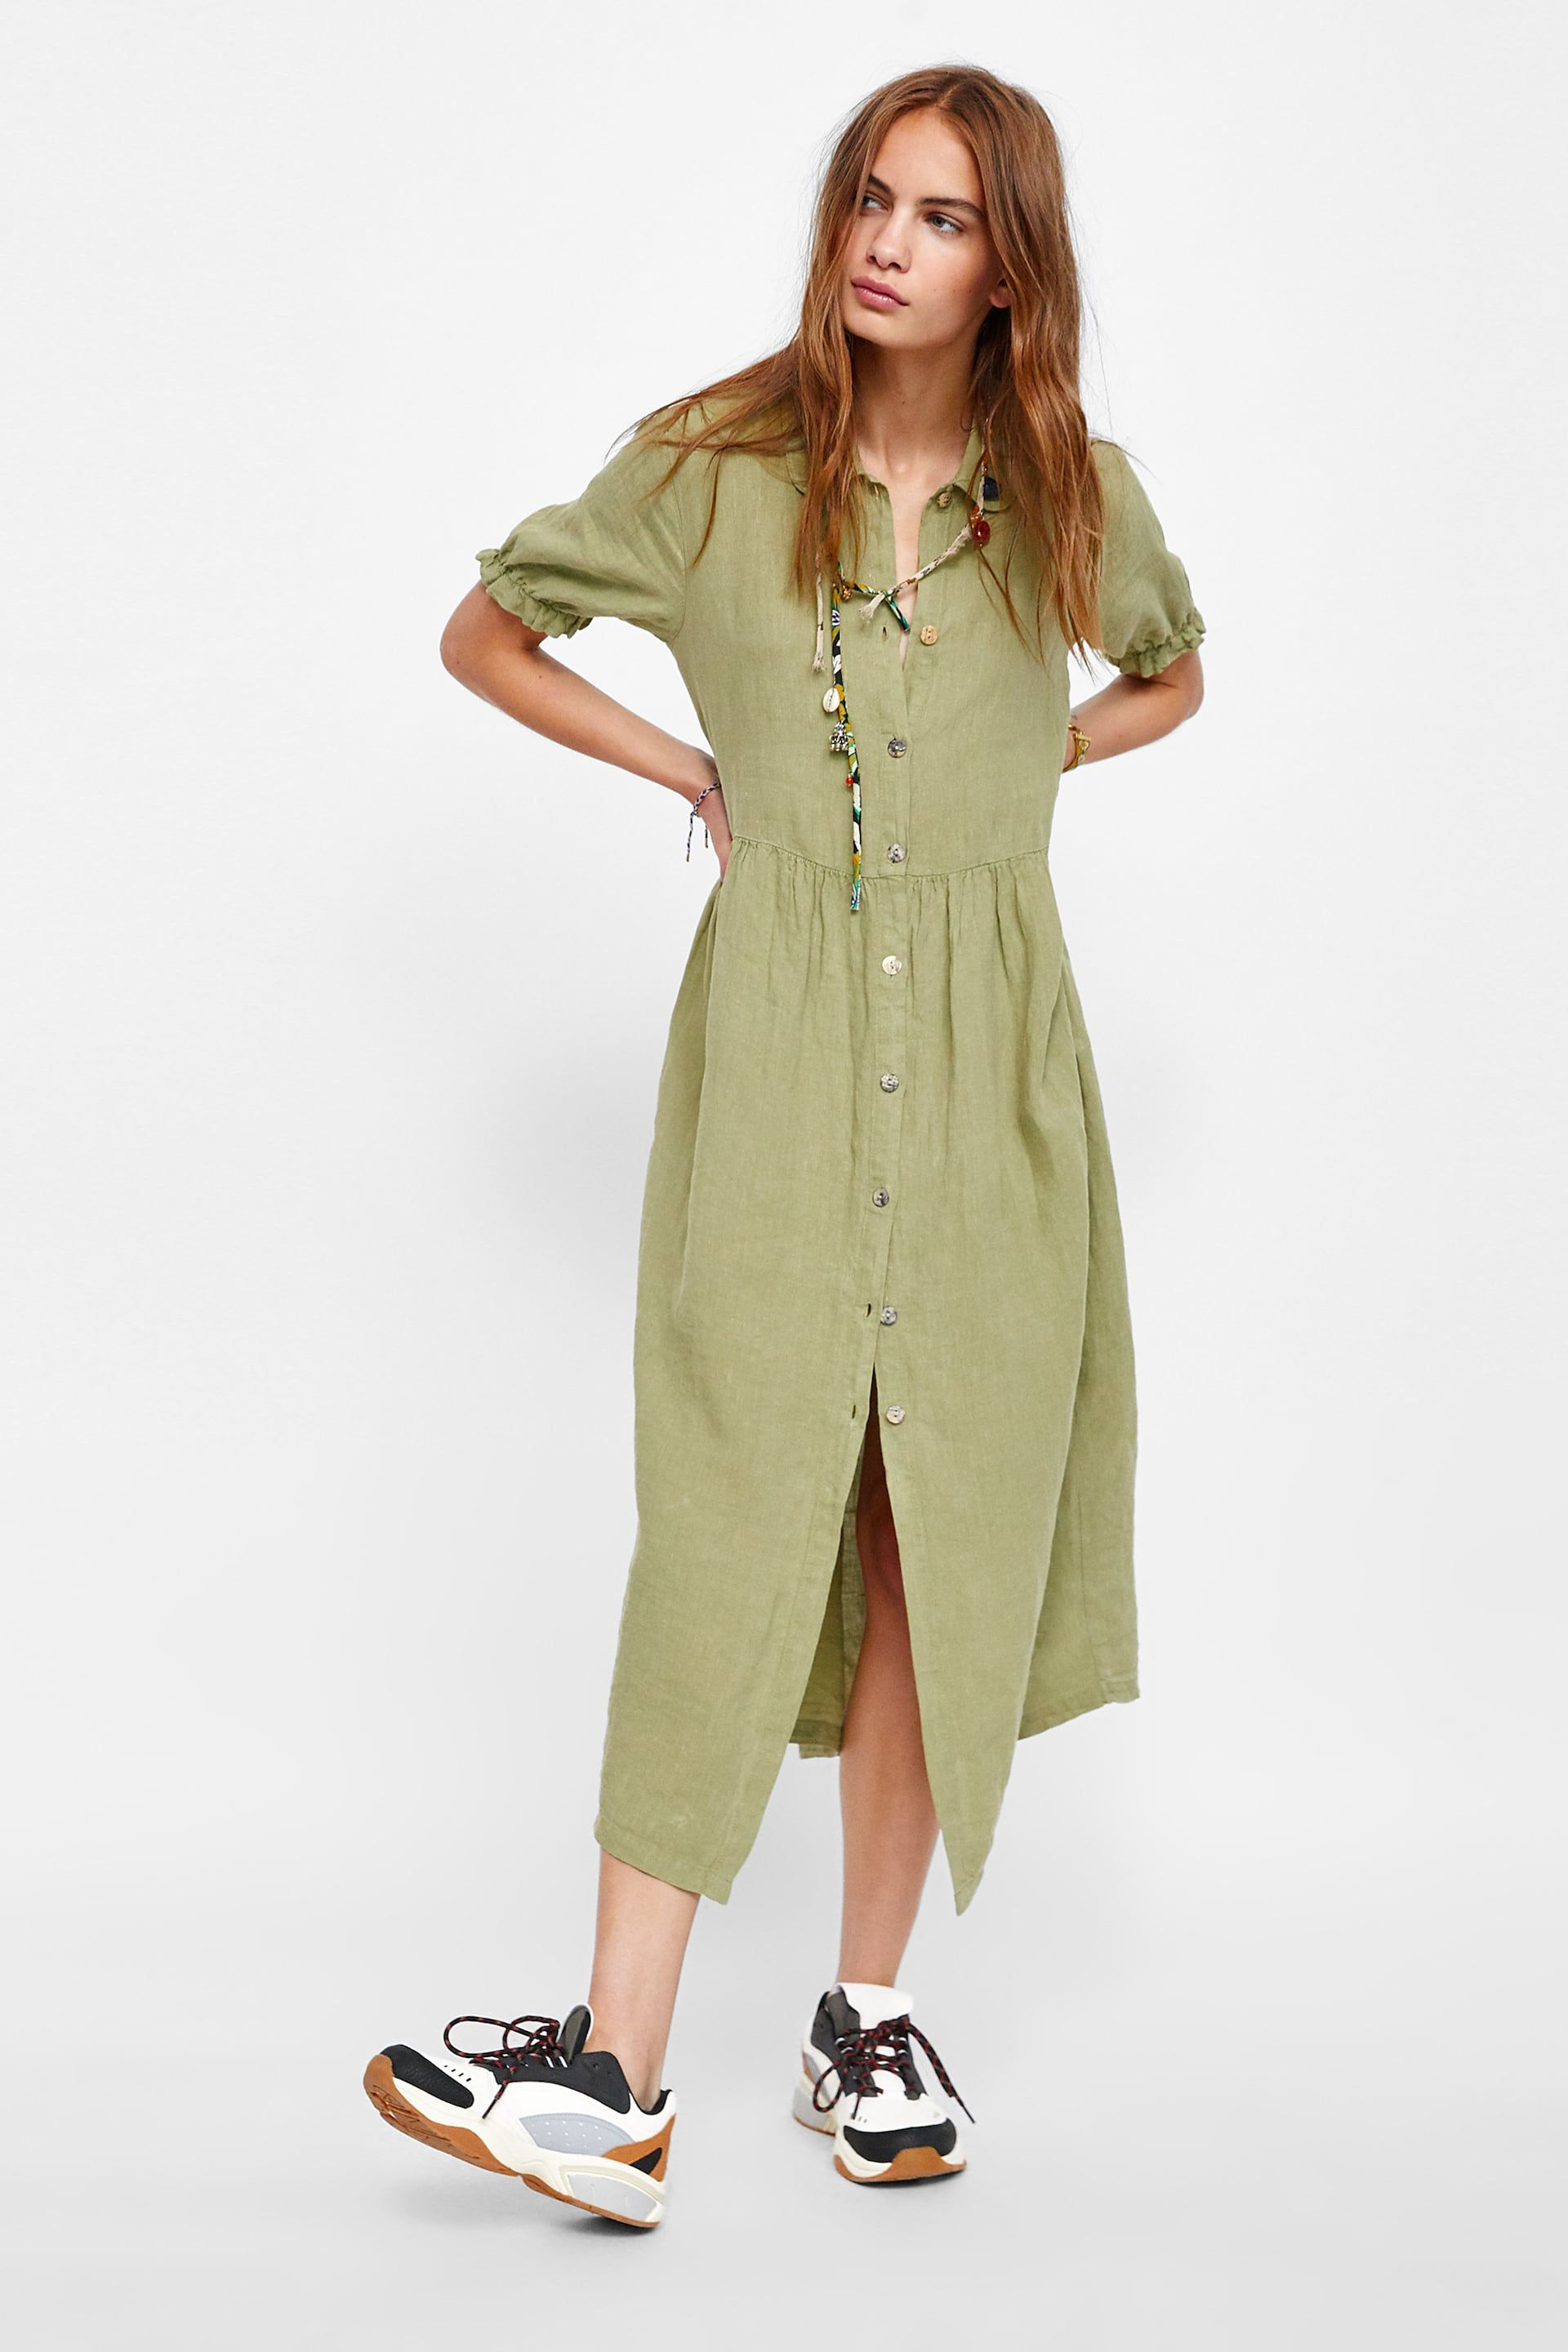 682fb701 Image 1 of LINEN DRESS from Zara | Things to Wear | Marito